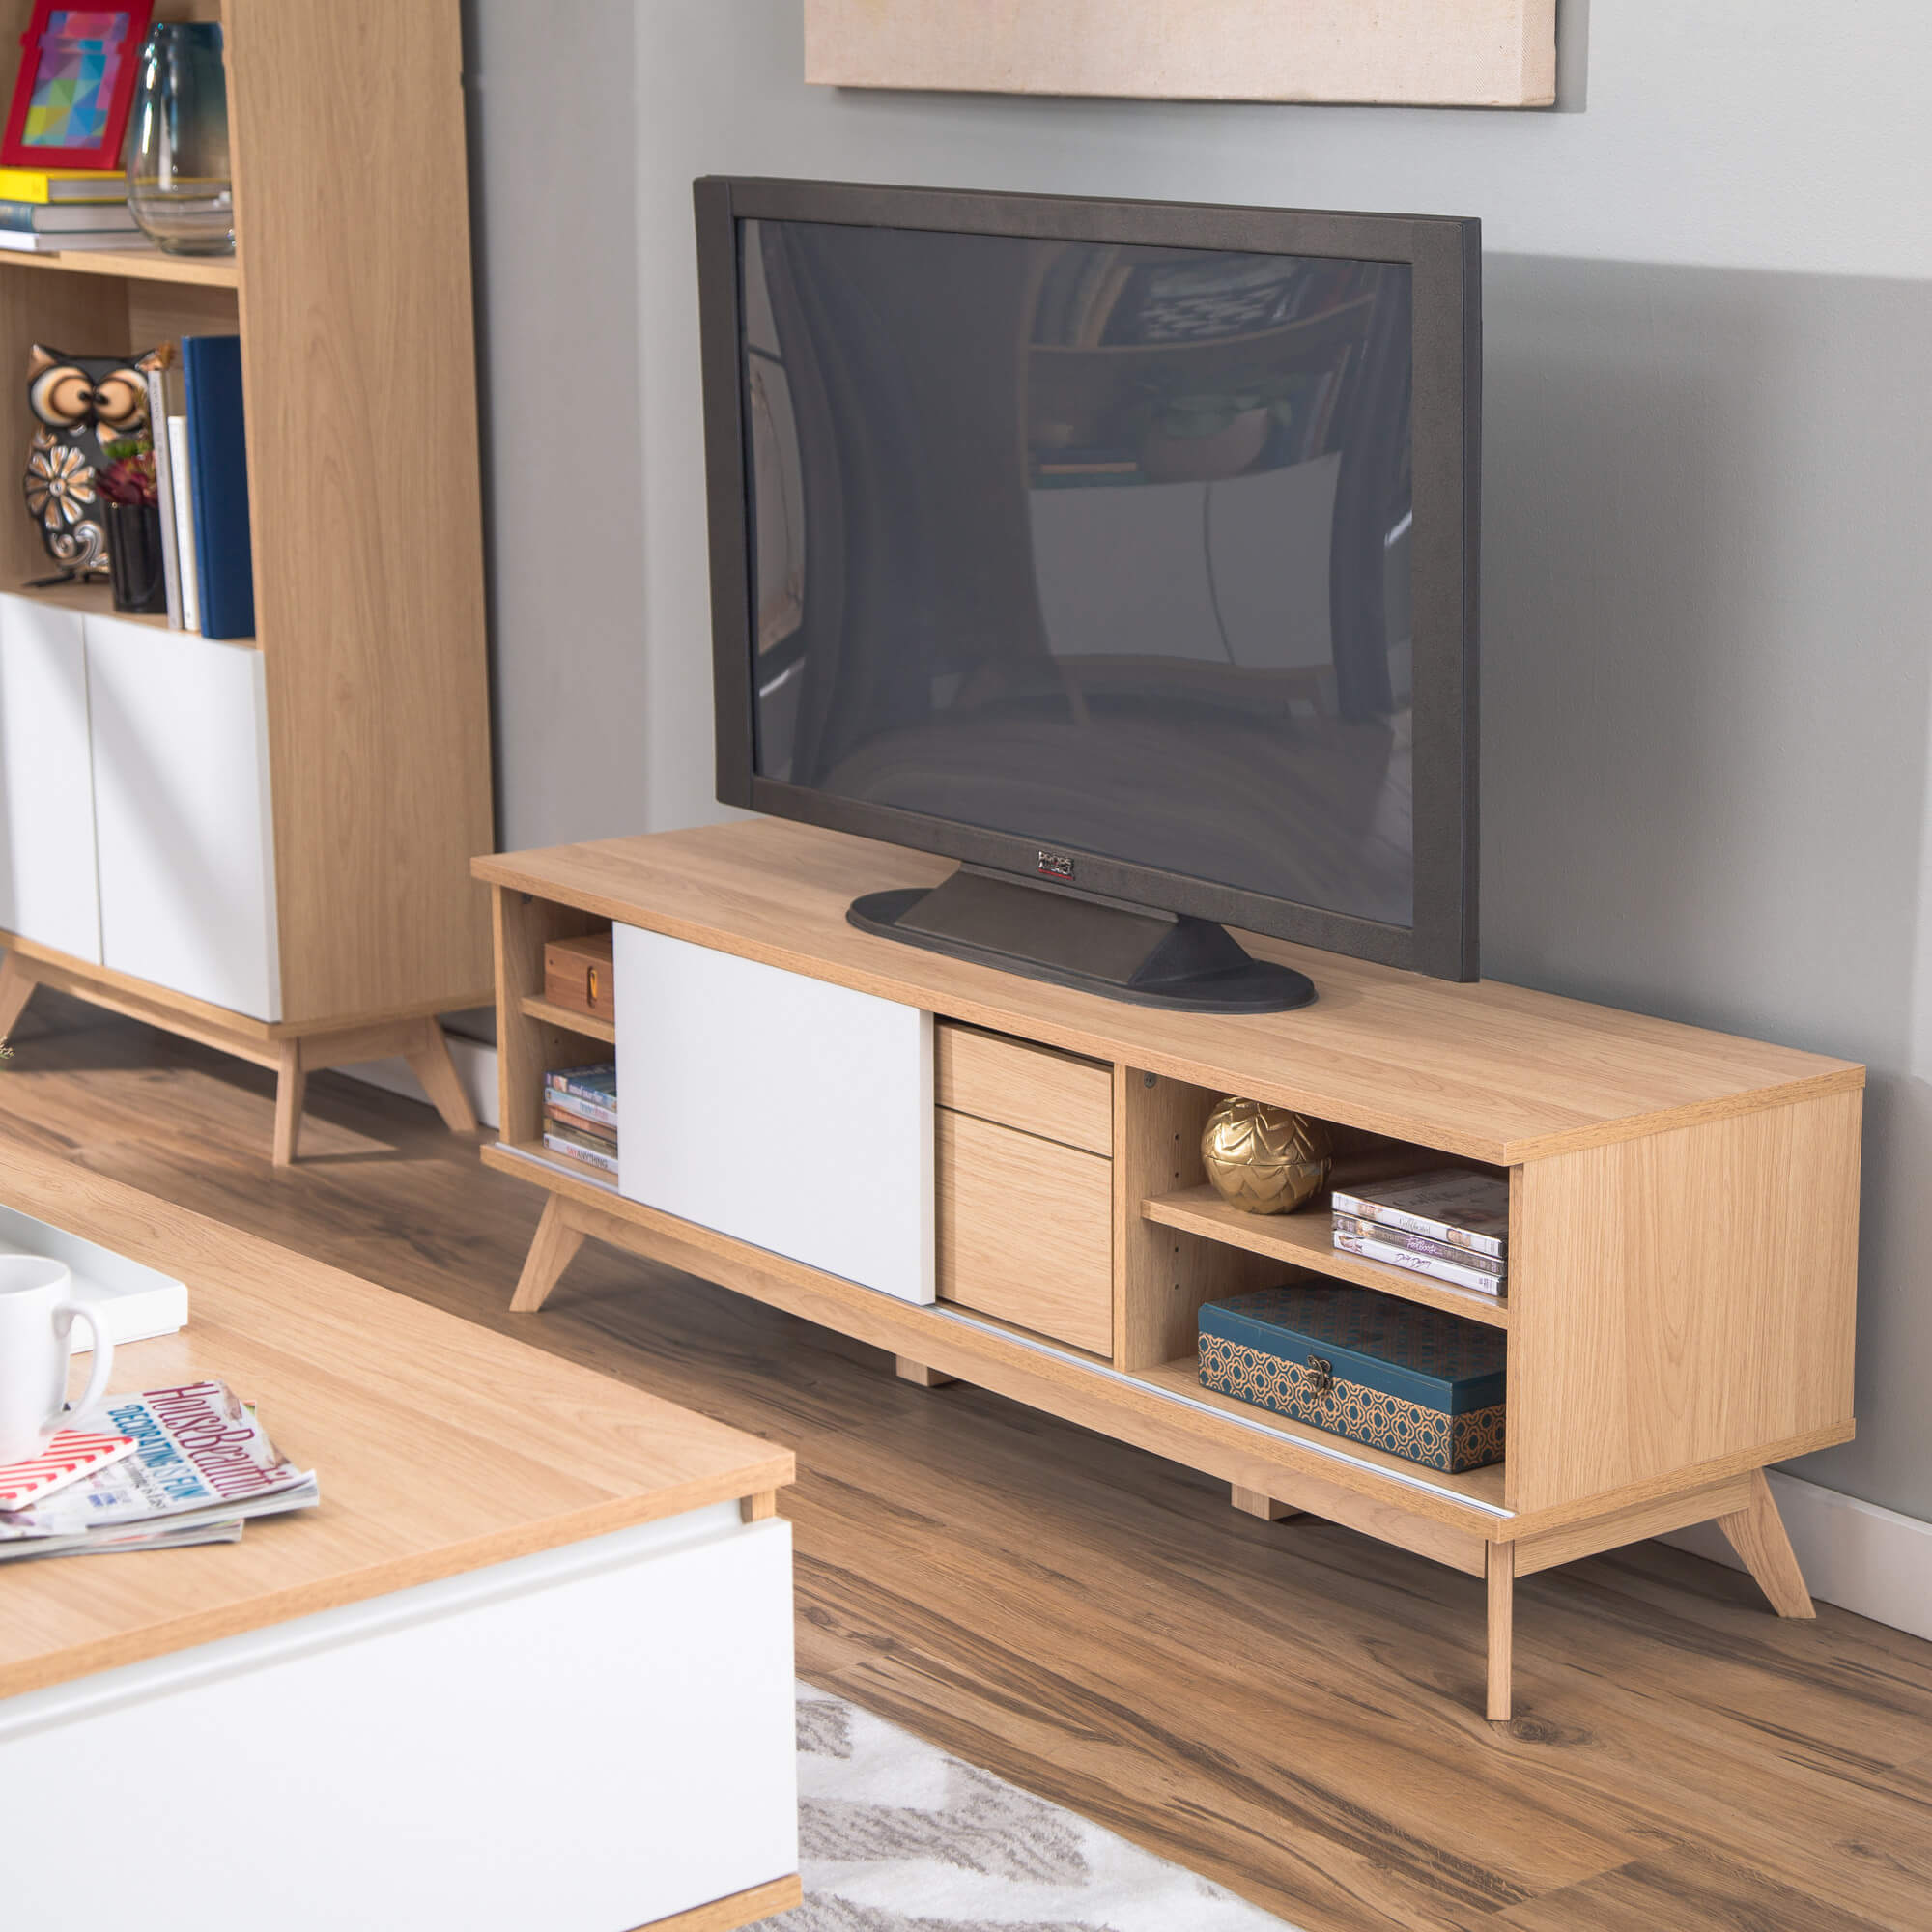 With a singular, holistic shape, the console design incorporates useful shelving and abundant surface area into a concise piece of furniture. Most models have closed shelving and a rectangular structure.